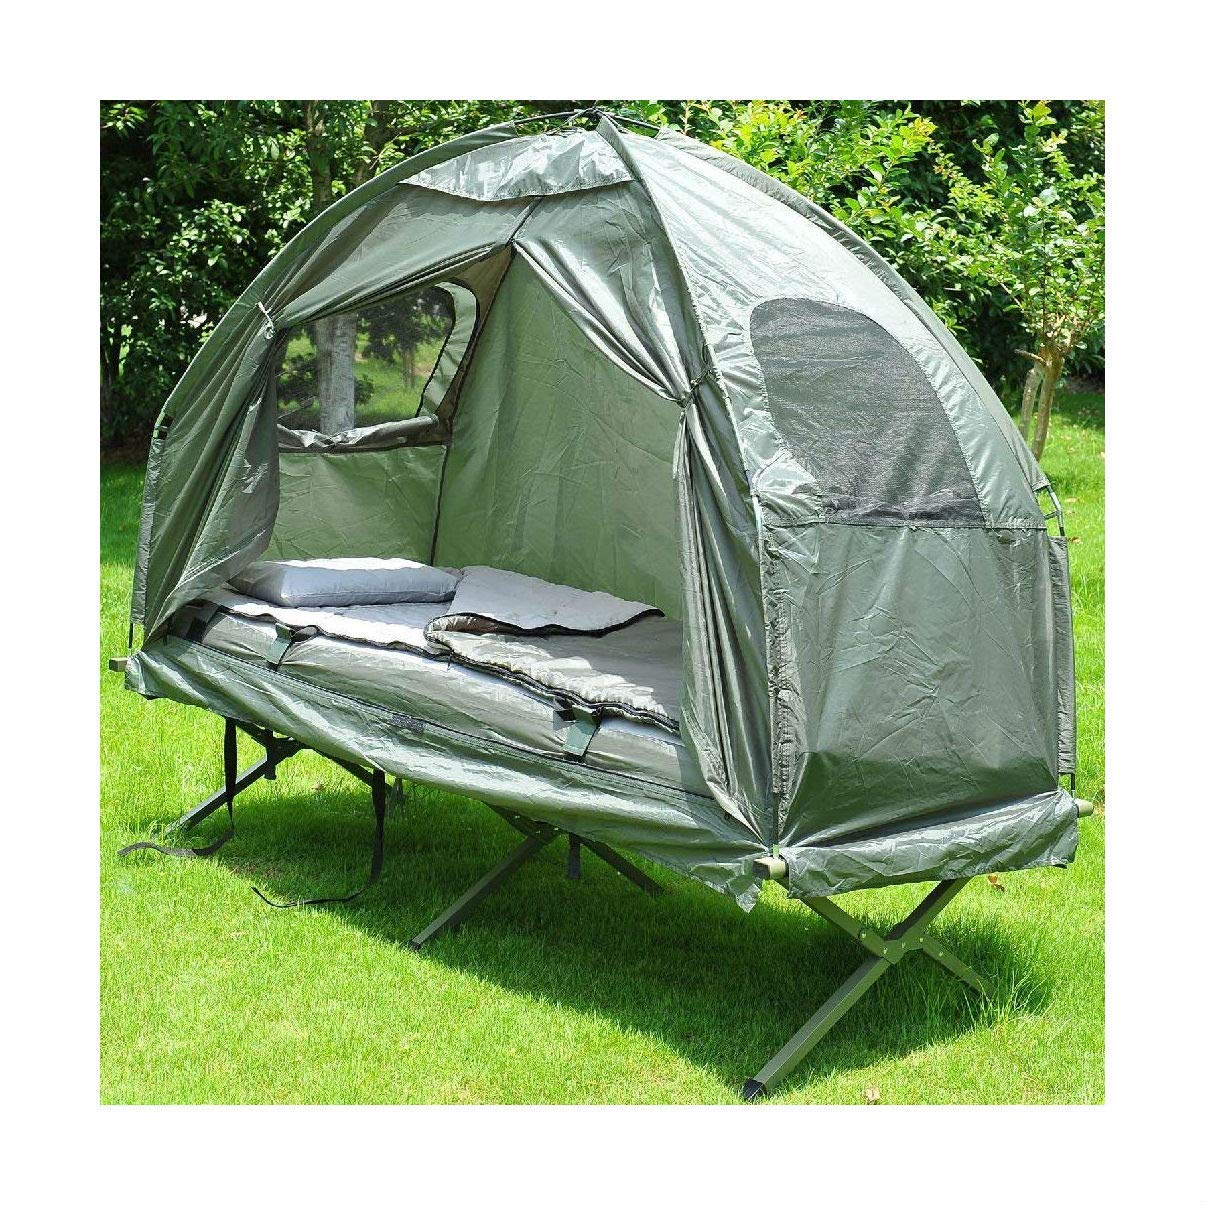 Outdoor 1-Person Folding Tent Elevated Camping Cot with Air Mattress Sleeping Bag by Turner's Merchant House